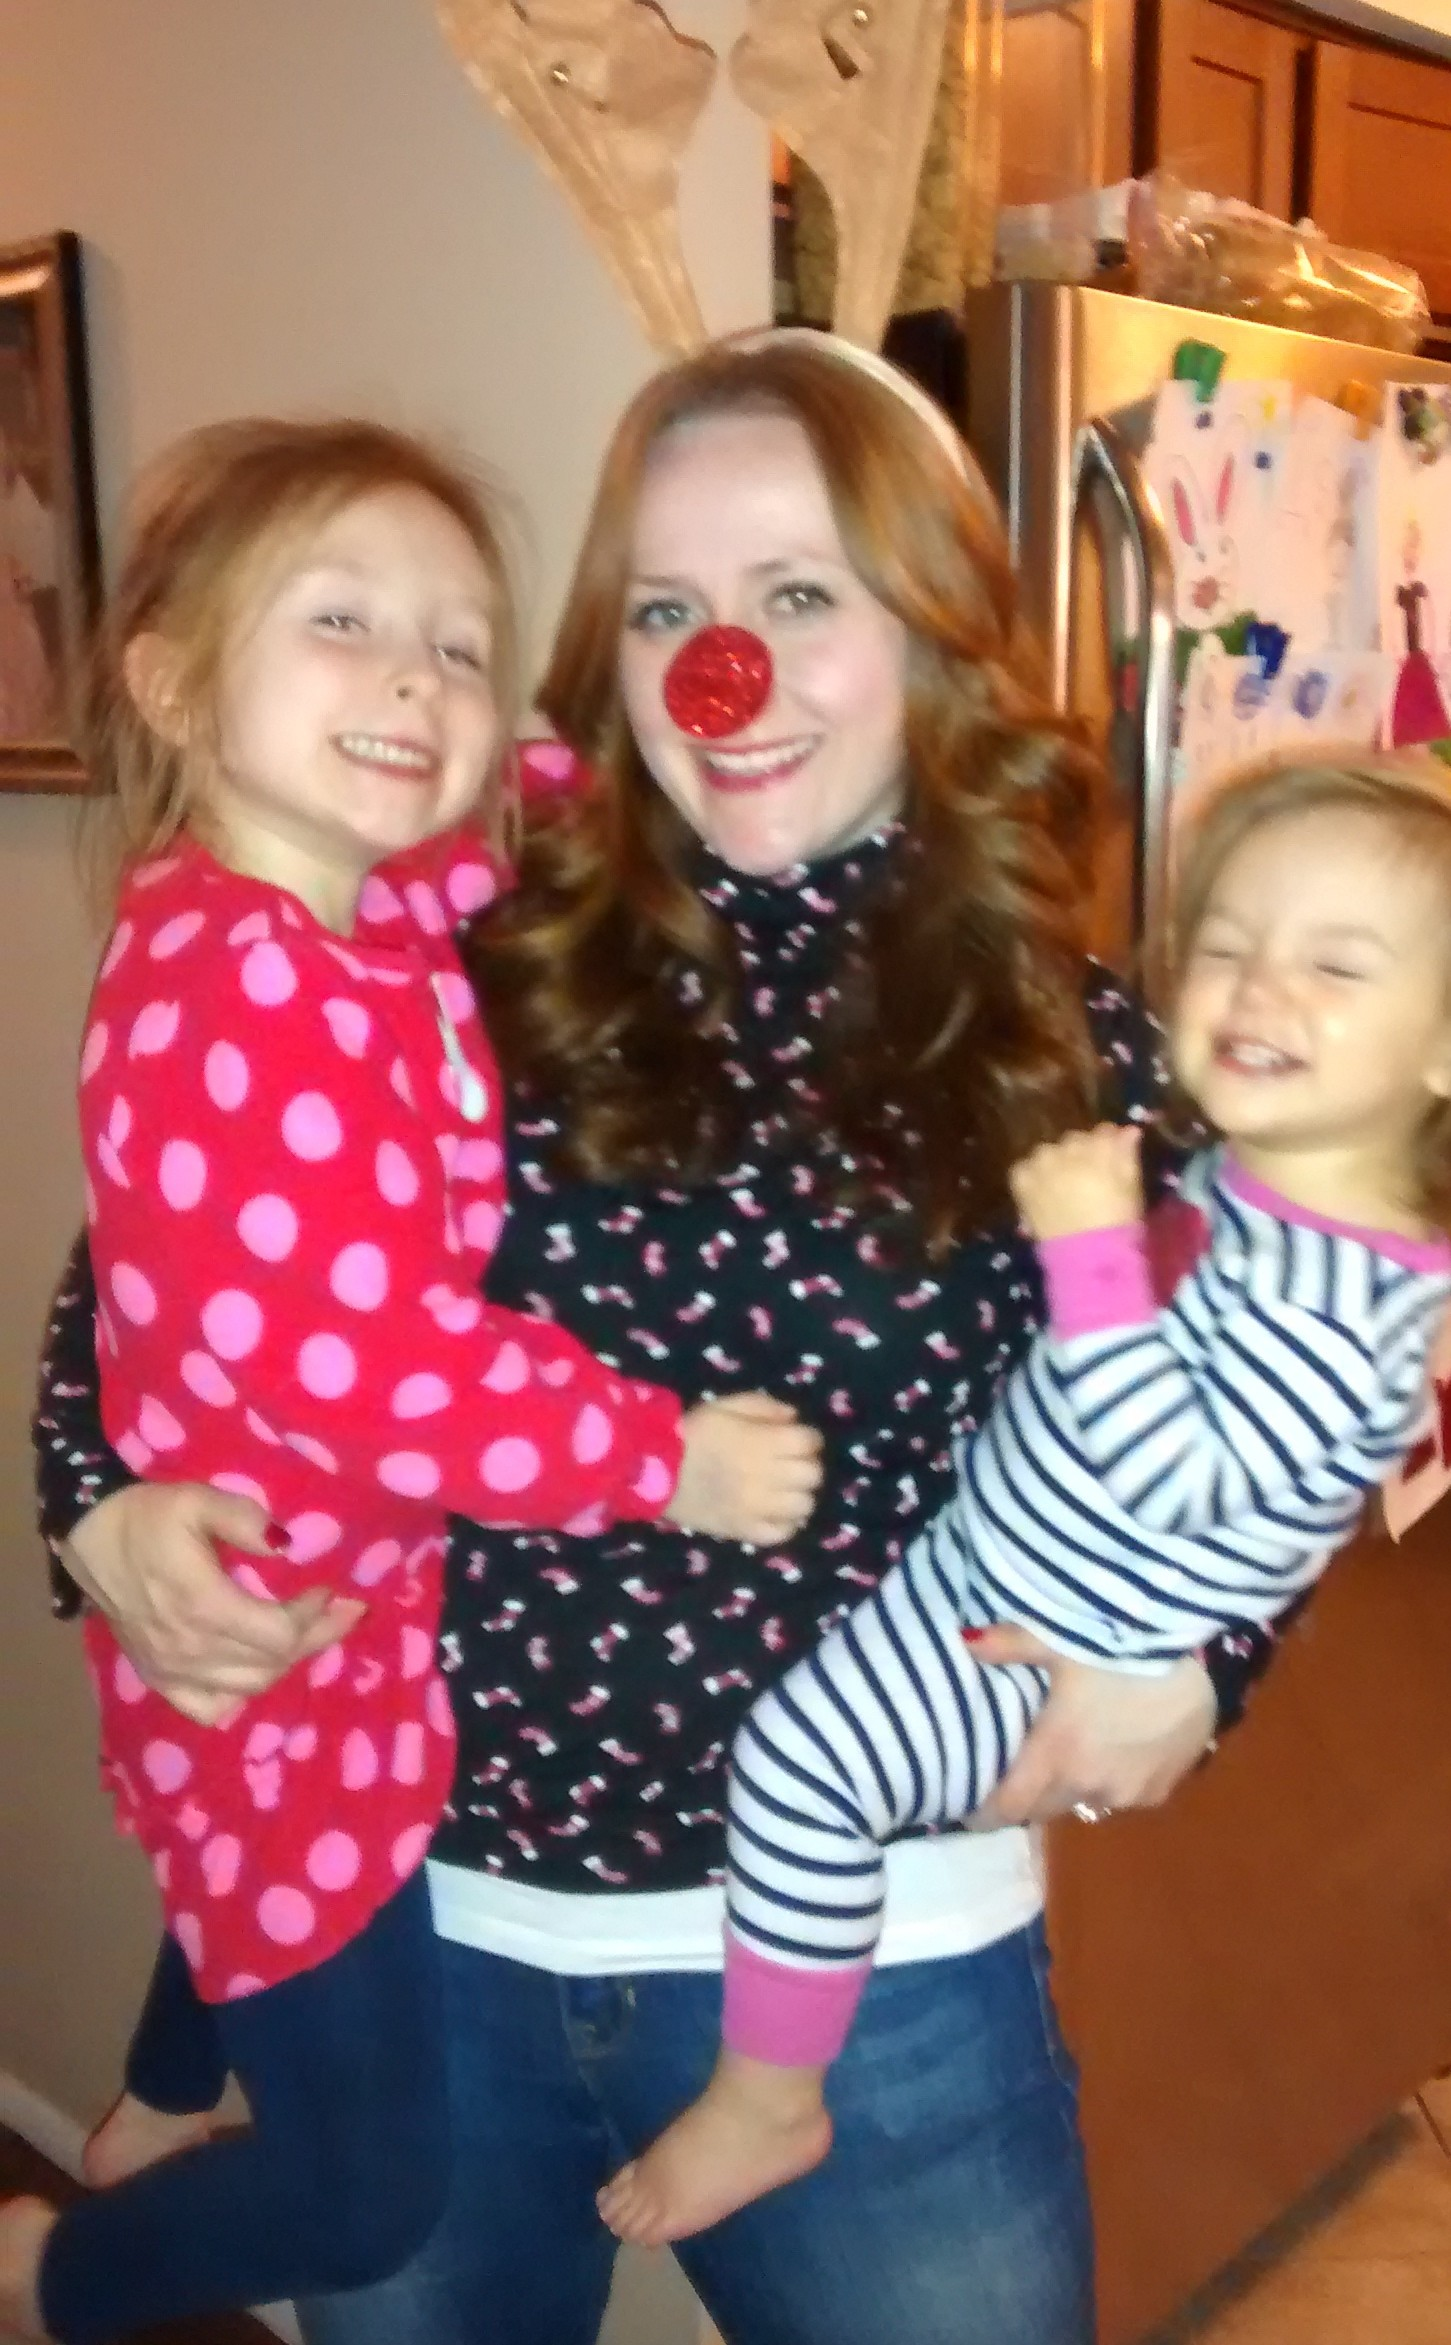 Me and girls with Rudolph nose